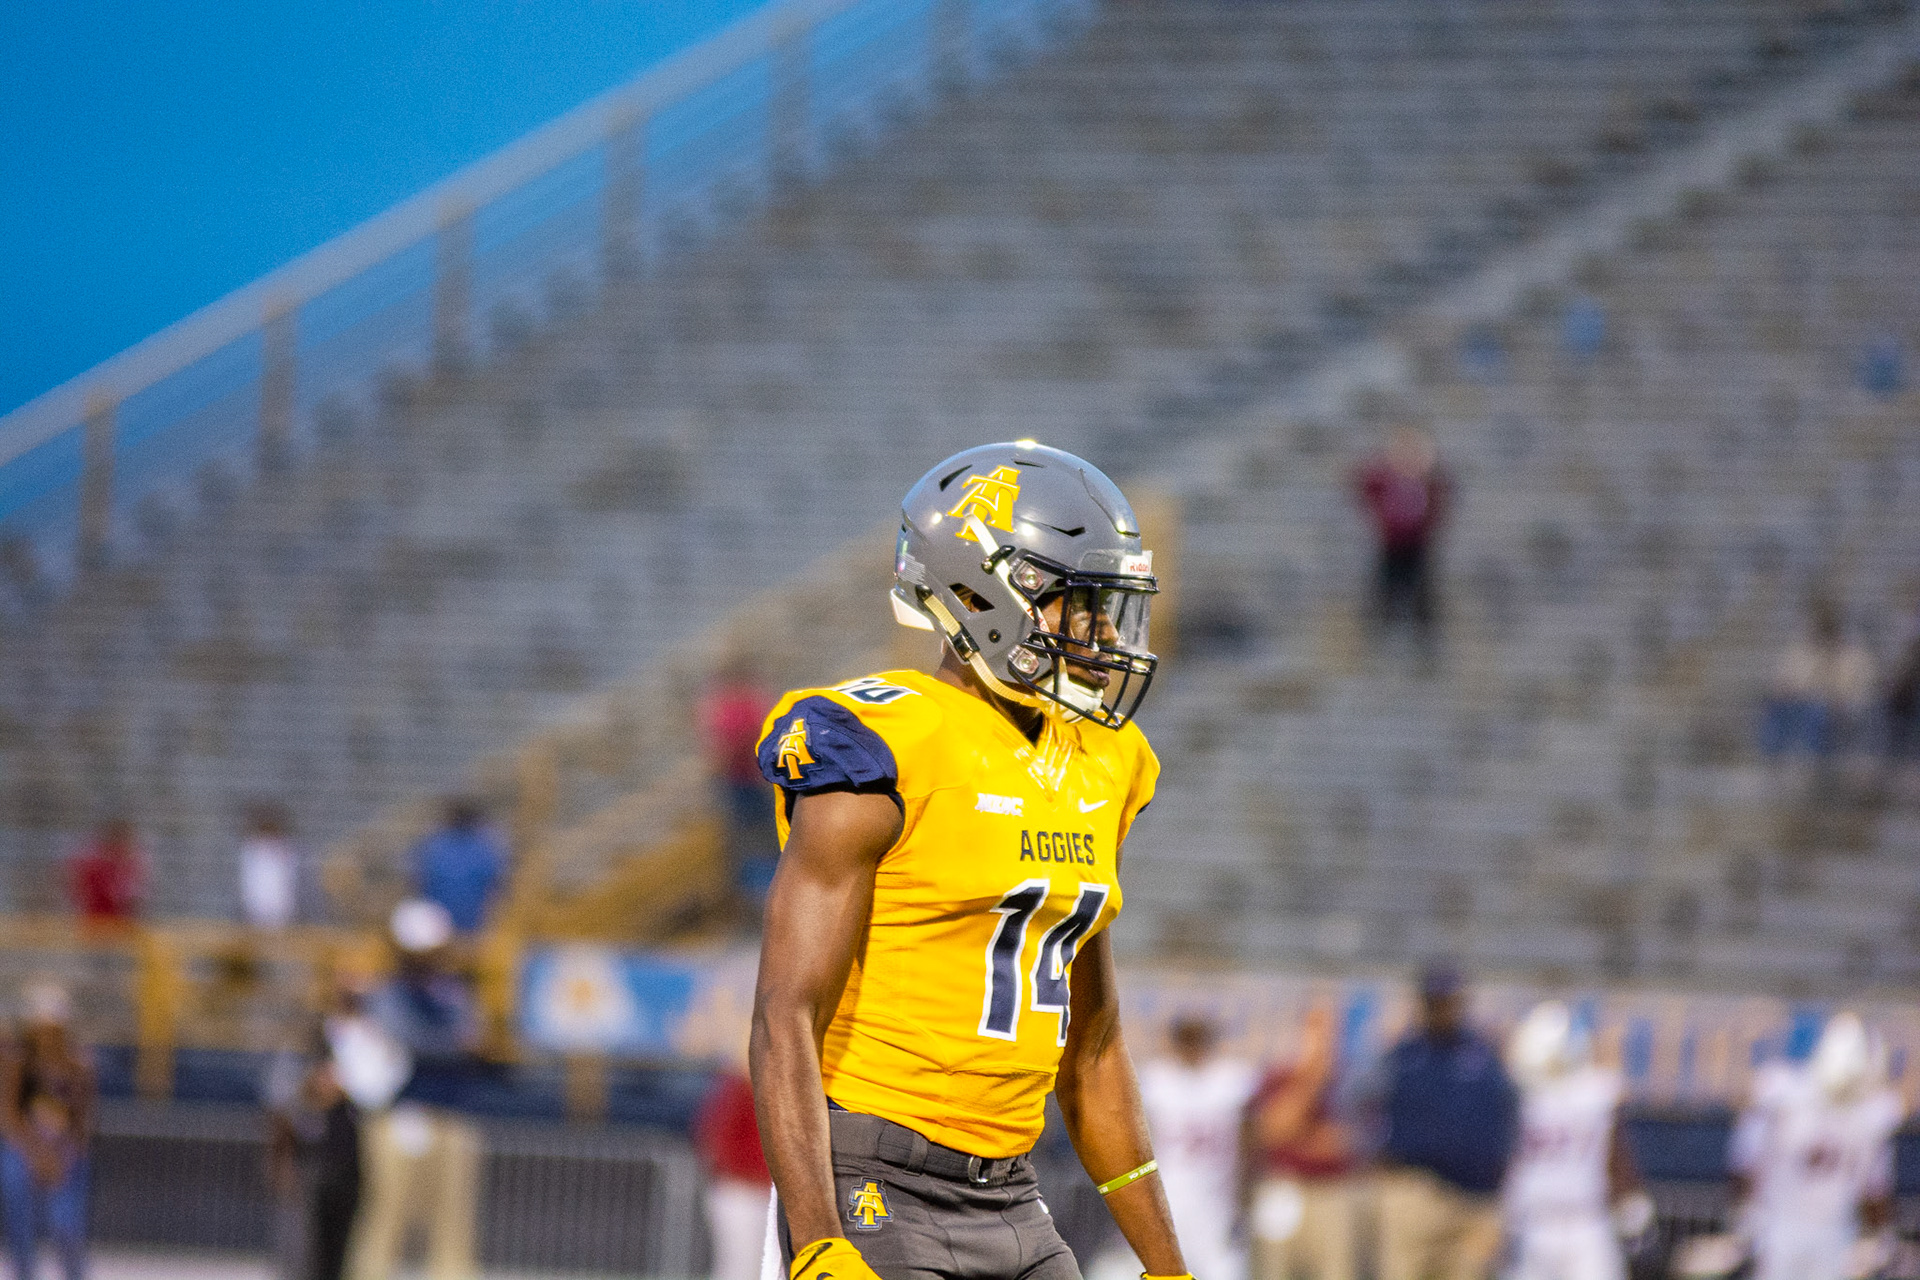 nc a&t vs sc state